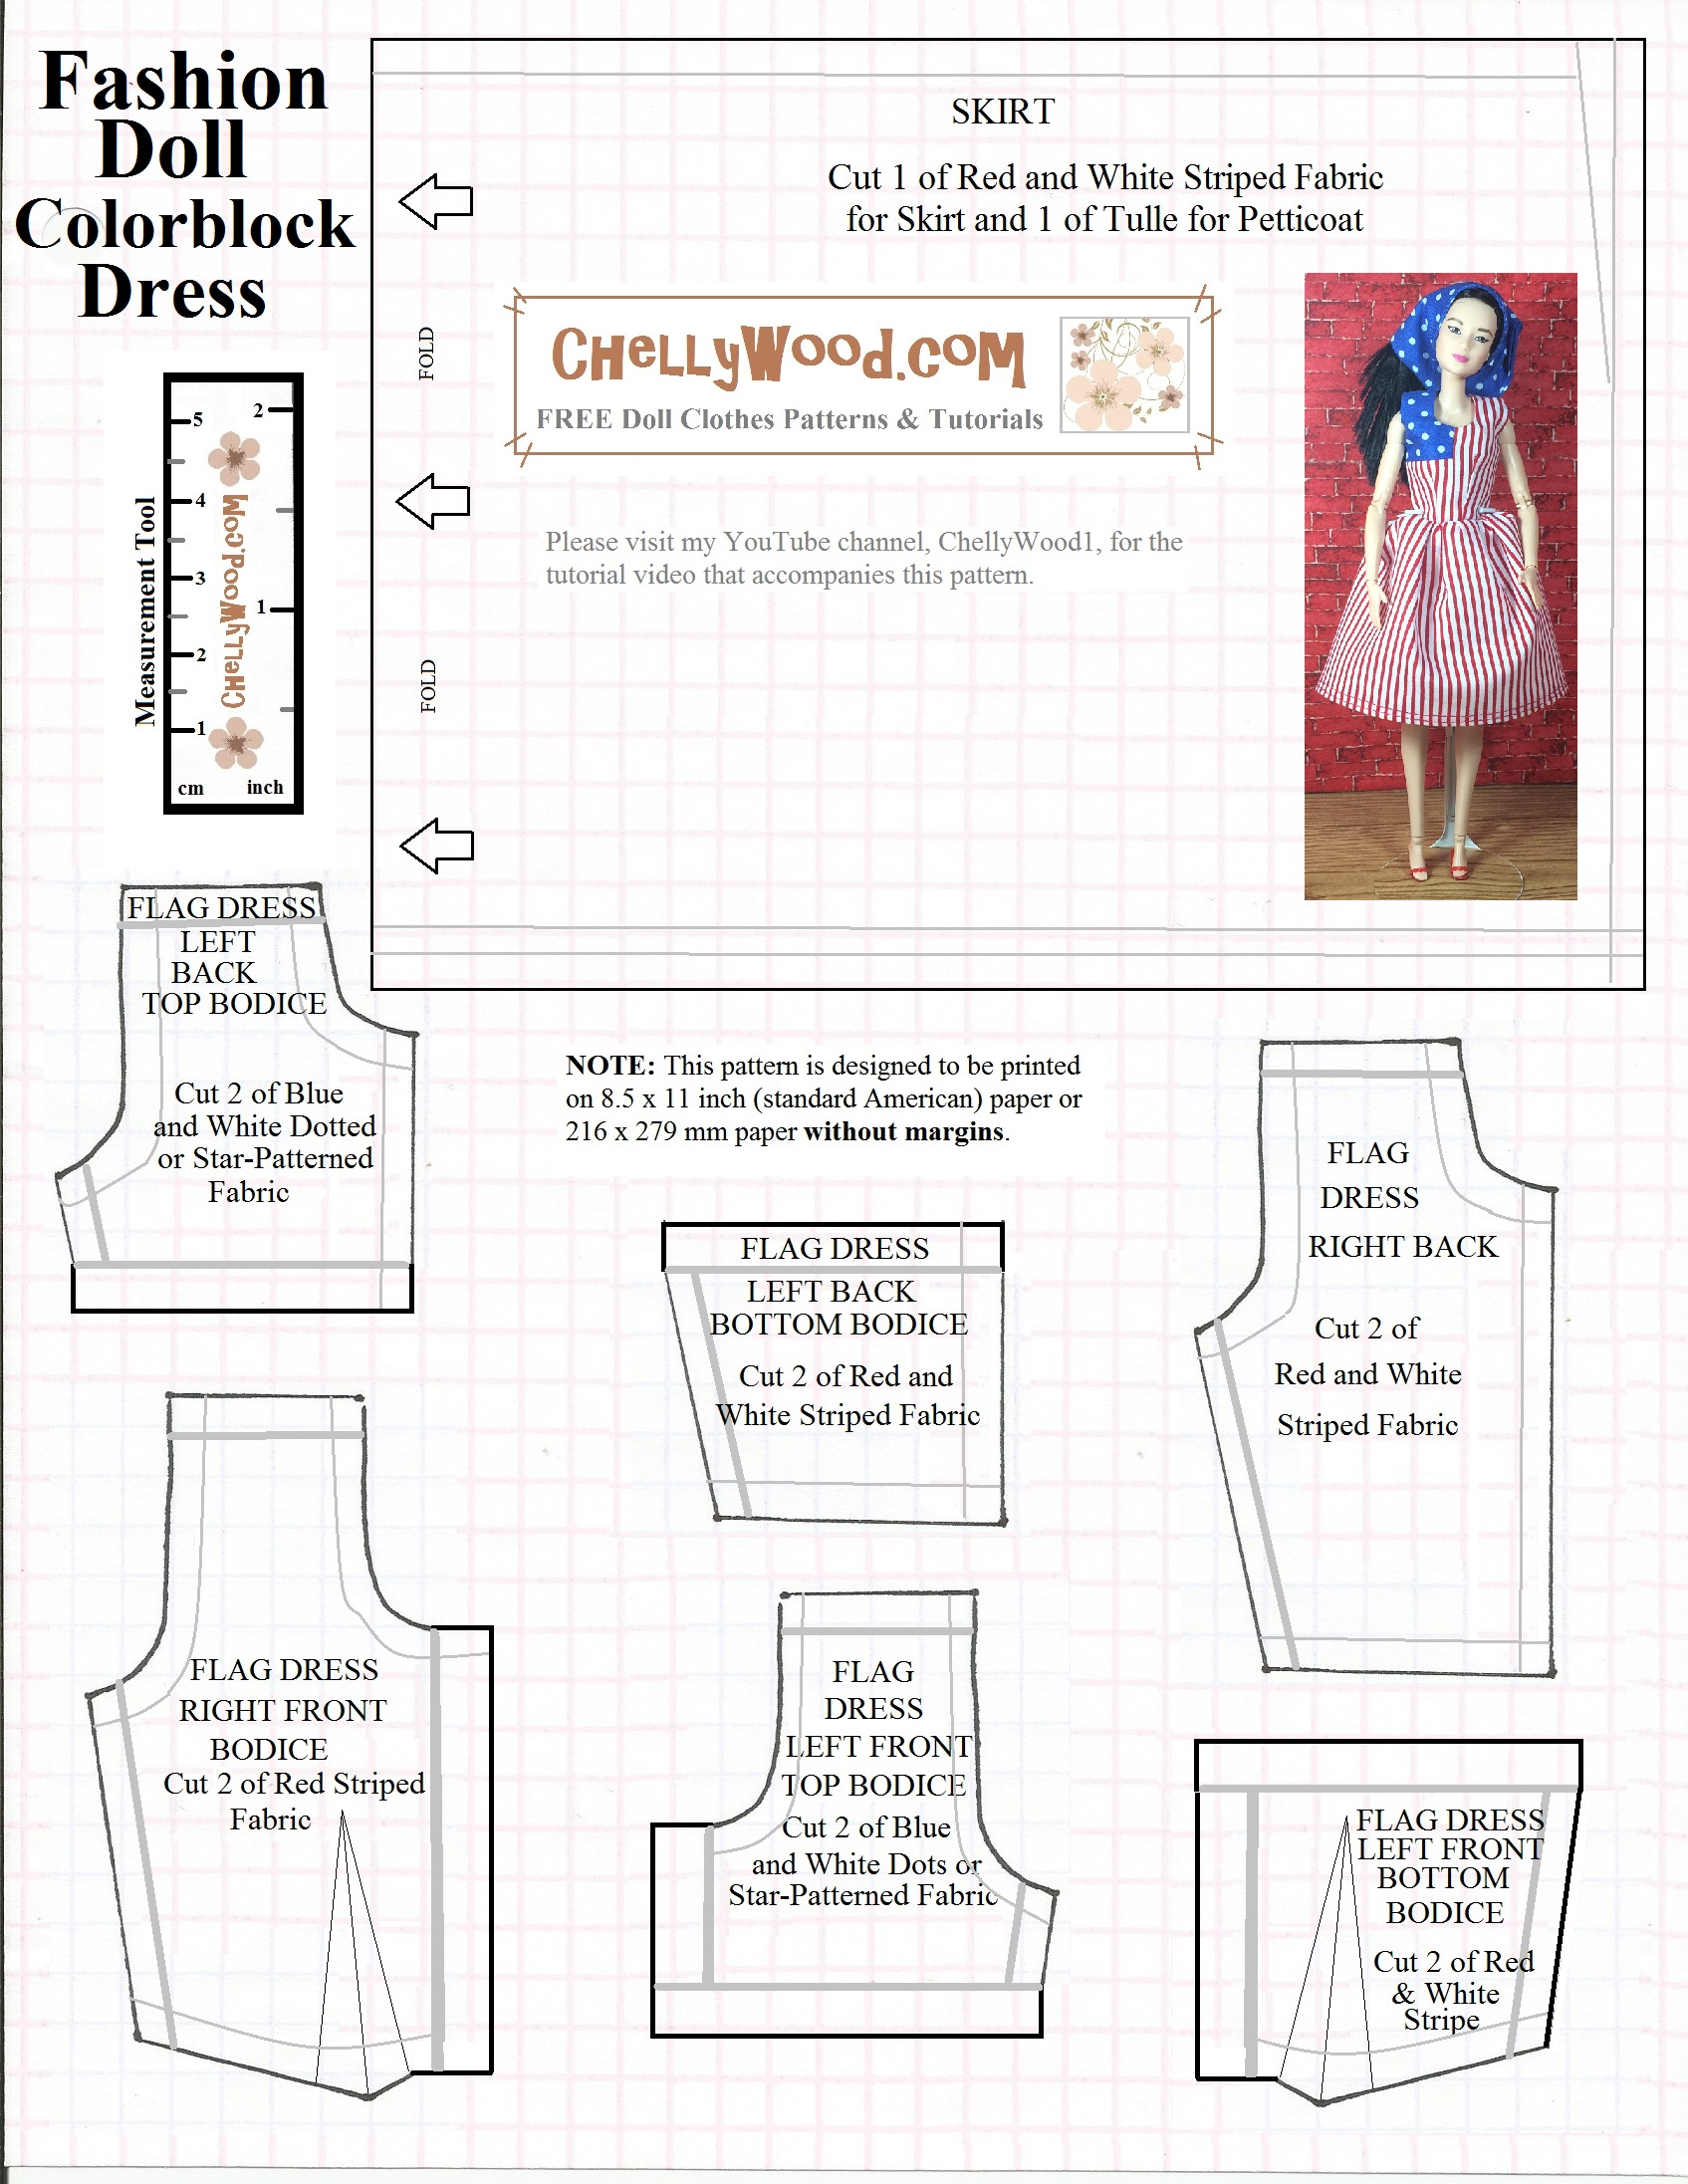 image regarding Barbie Dress Pattern Free Printable referred to as Day by day Practices Totally free Doll Garments Behaviors